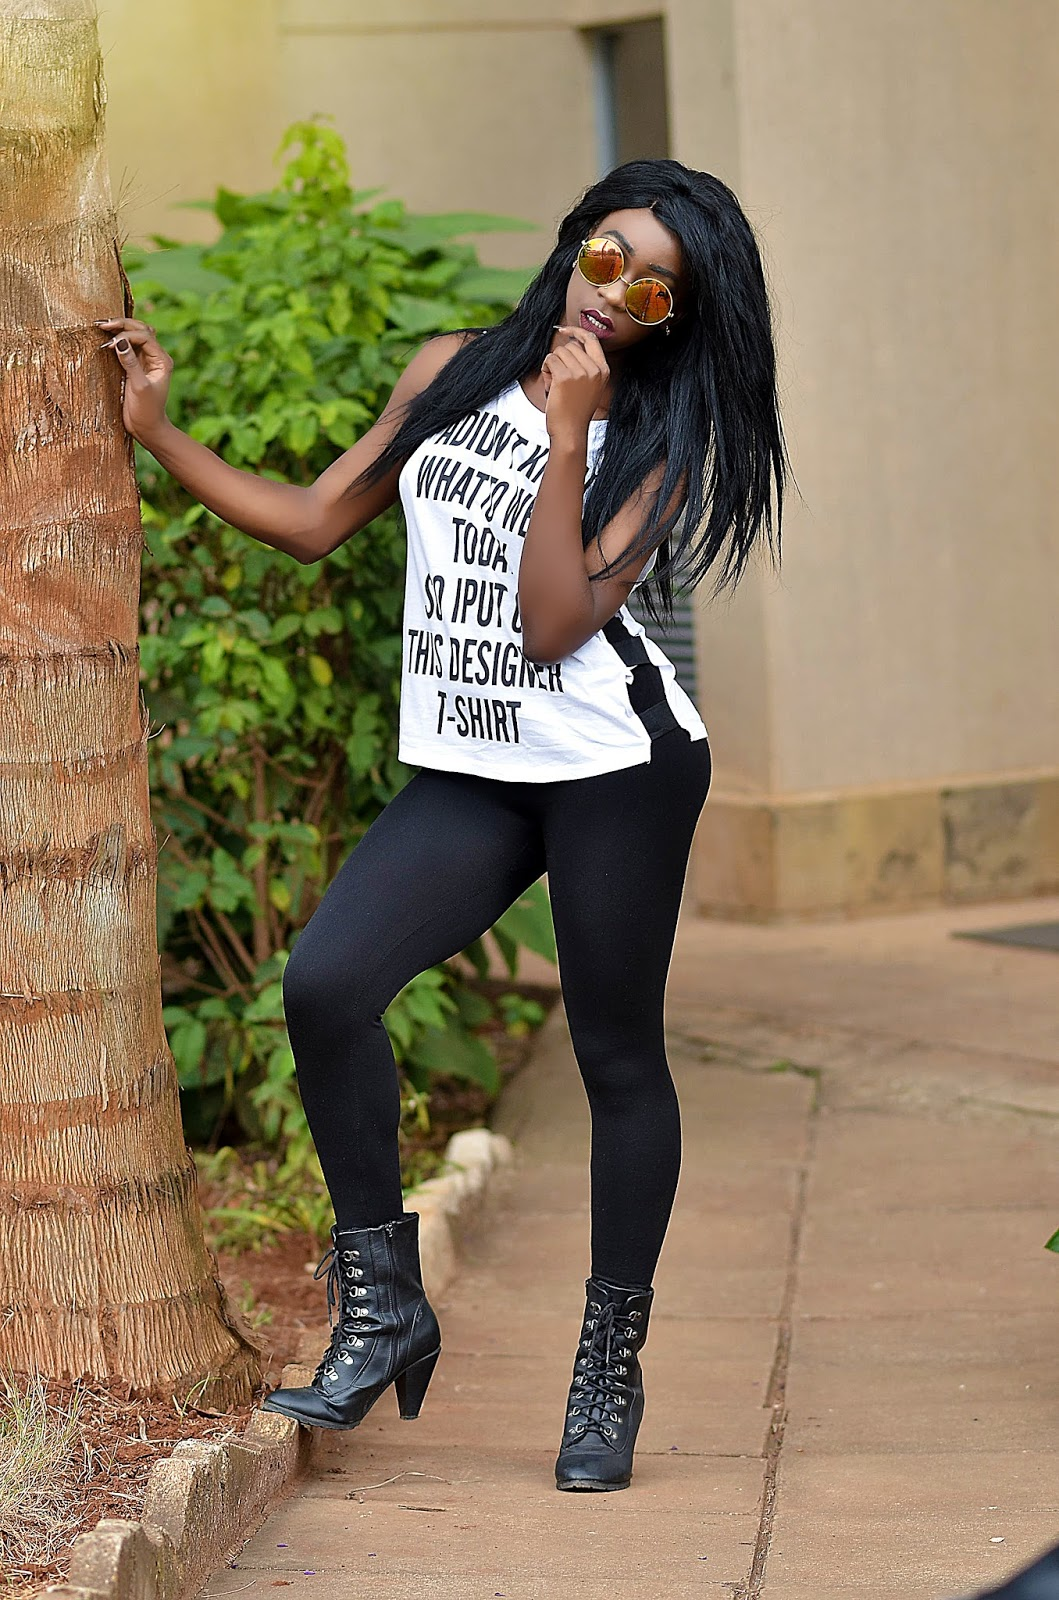 how to slay in leggings, leggings, how to wear leggings, leggings outfit ideas, mim , leather jacket outfit, what to wear with leggings, what to wear kenya, outfit ideas, outfit ispitaion, how to take care of your leggings, legging tips every girl should know